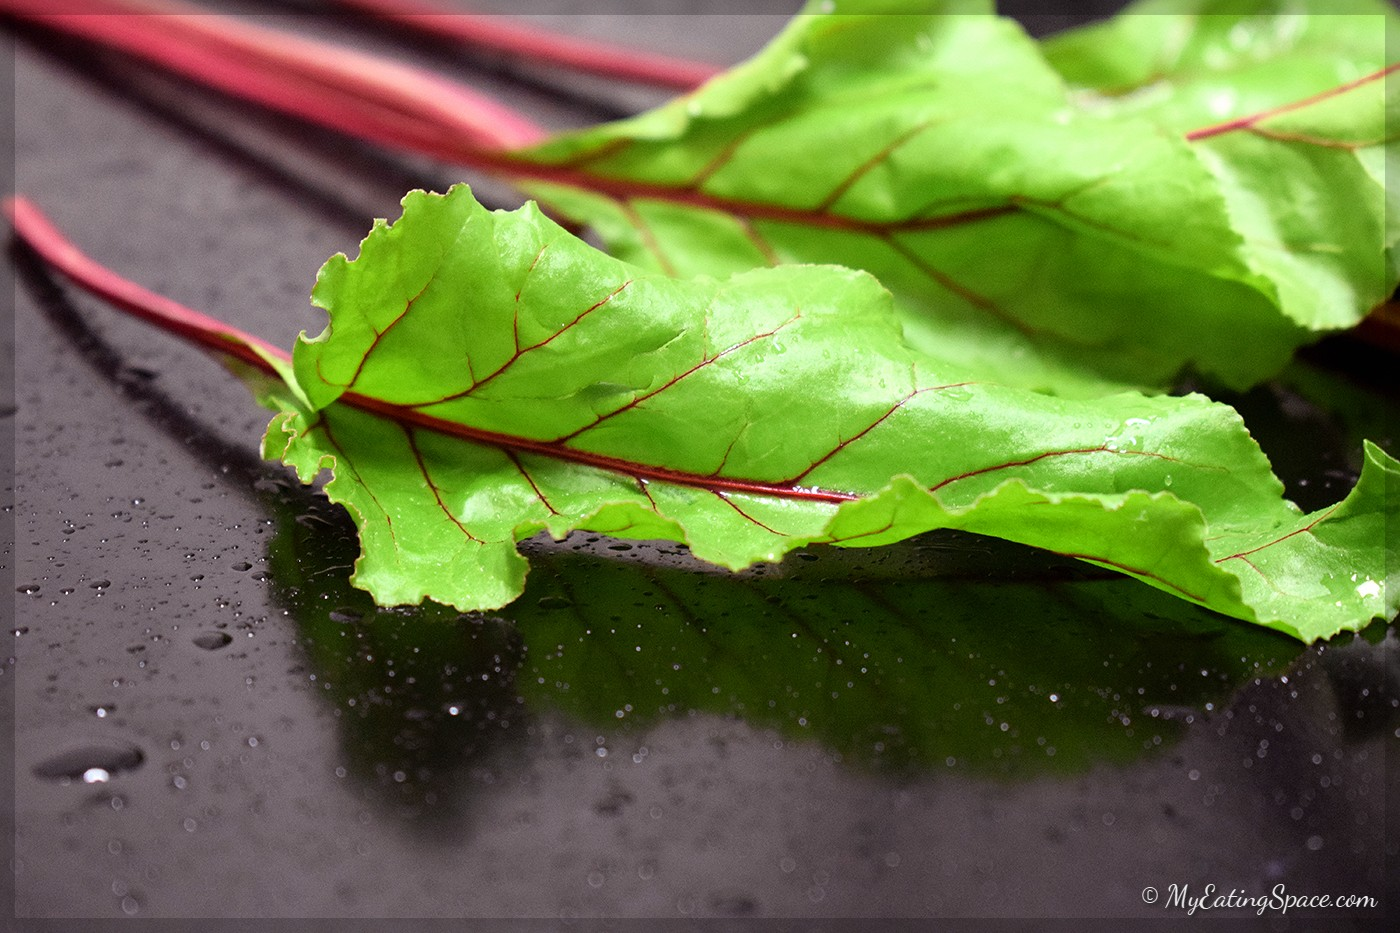 Beet leaf (beet greens) is better than spinach. They are low in calories, fat and cholesterol and hish in vitamins and minerals.They are good in sautés, salads and drinks